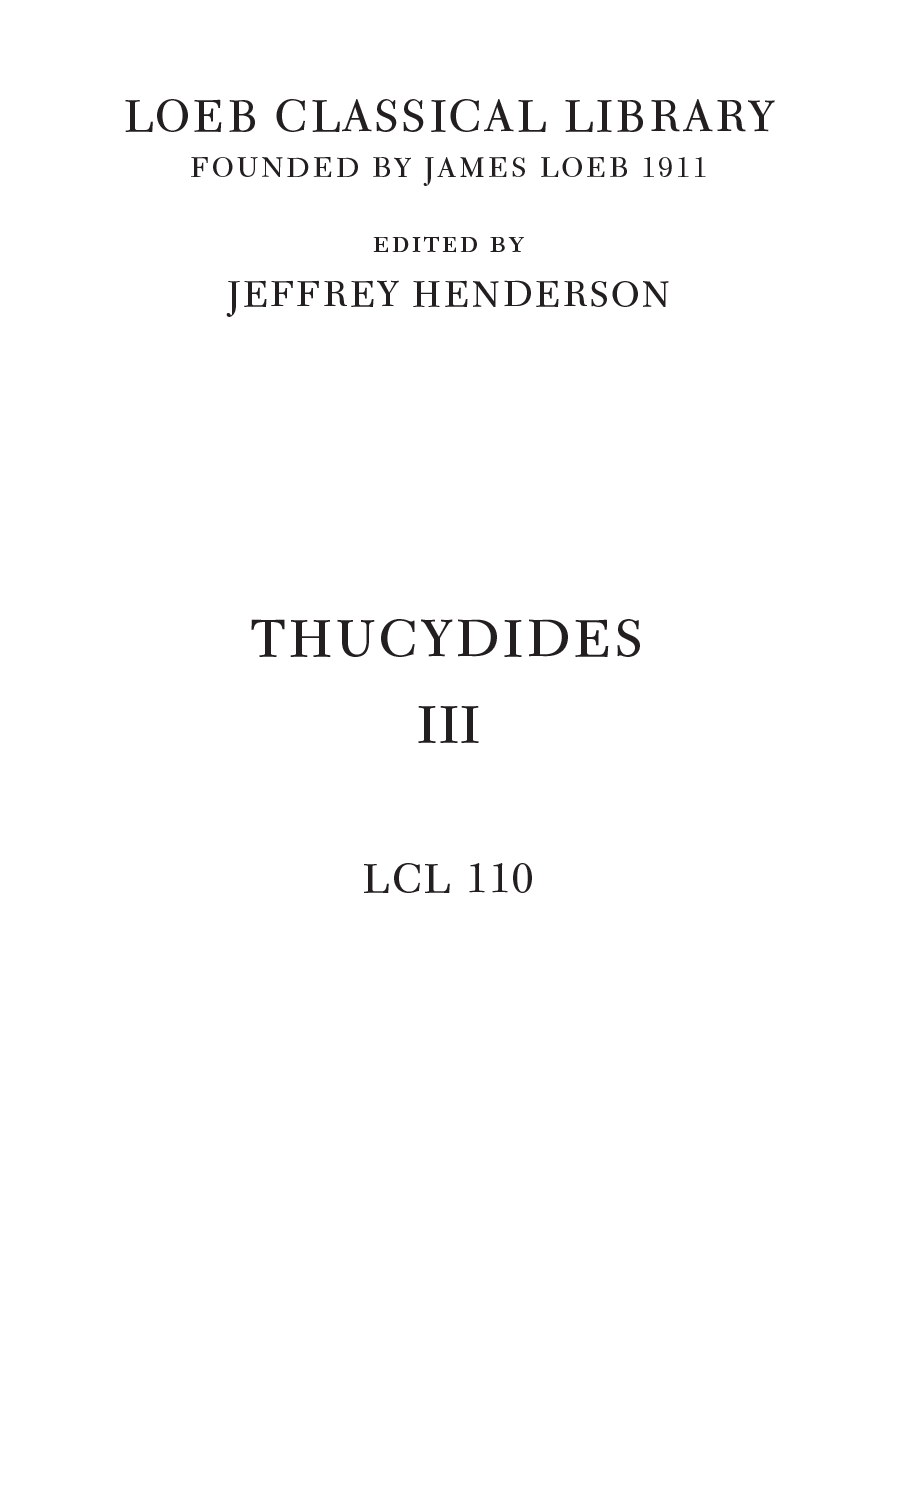 LOEB CLASSICAL LIBRARY FOUNDED BY JAMES LOEB 1911 EDITED BY JEFFREY HENDERSON THUCYDIDES III LCL 110